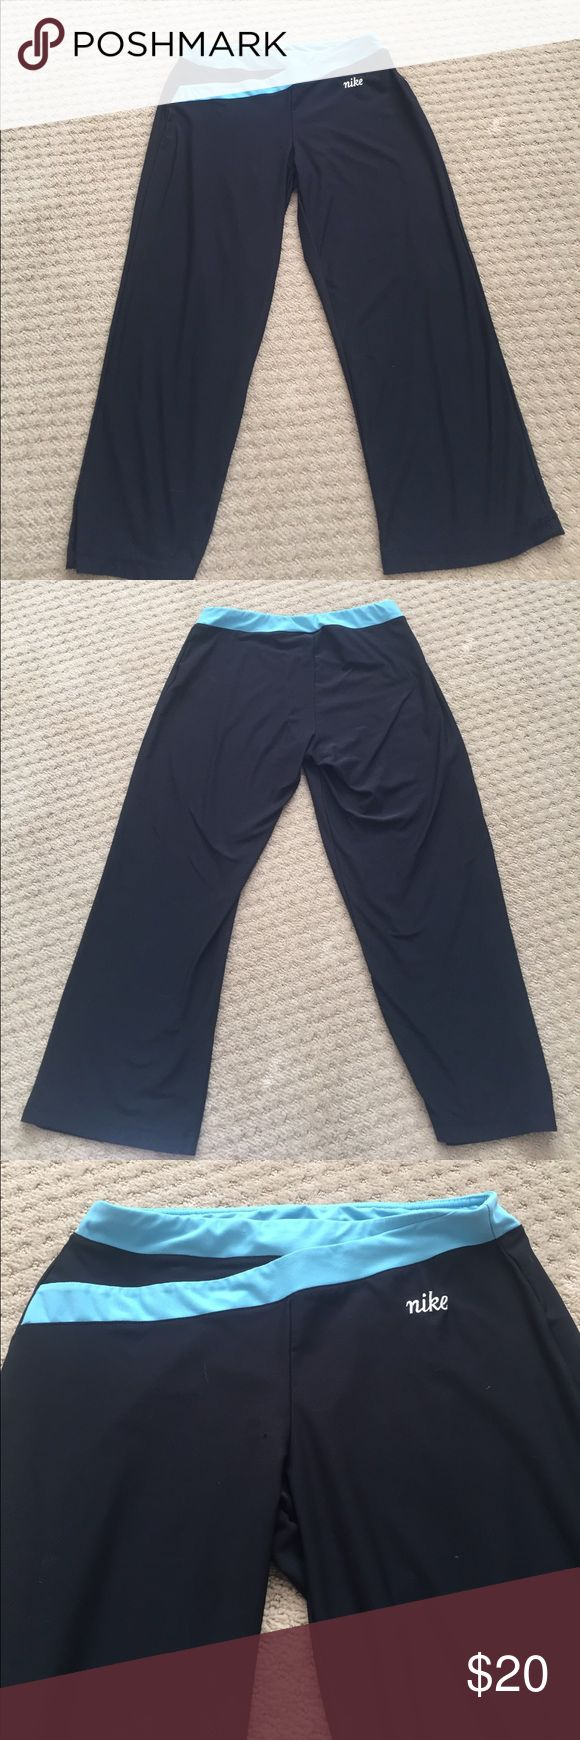 Nike Capri Workout pants Nike Capri workout pants. Great soft material. In good condition. Not a skinny leg but not wide either. It's an in between, comfortable leg. Nike Pants Capris